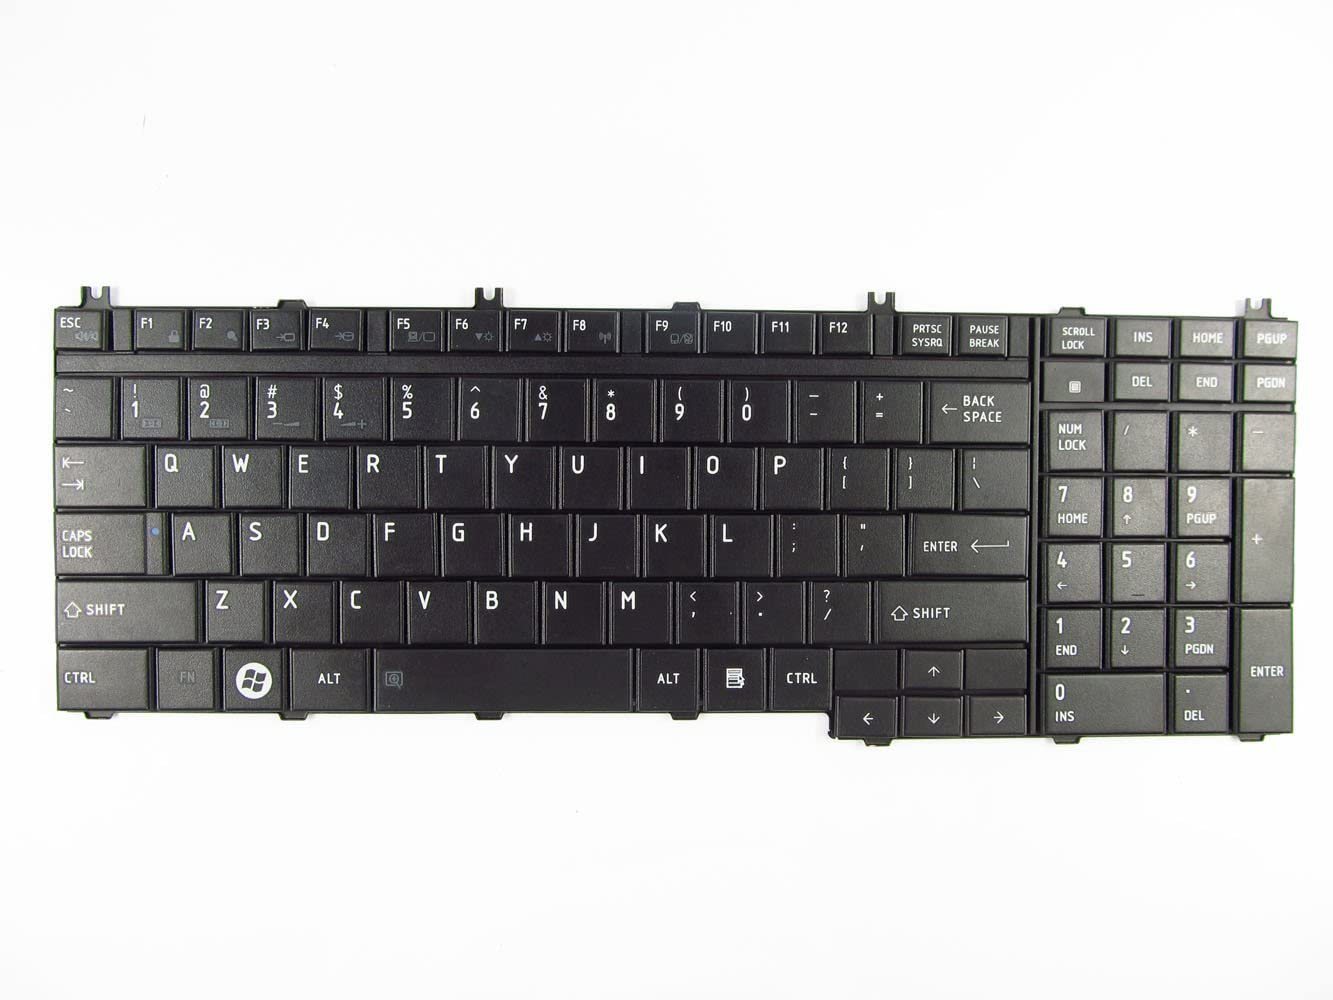 Abakoo New Keyboard for Toshiba Satellite P300 P200 P205 P305 L350 L355 P505 P500 L505 A500 A505 Qosimio G50 X300 X305 L510 L515 L581 L550 L555 L505D-GS6000 L505D-S5983 L505D-ES5026 ES5025 Black US